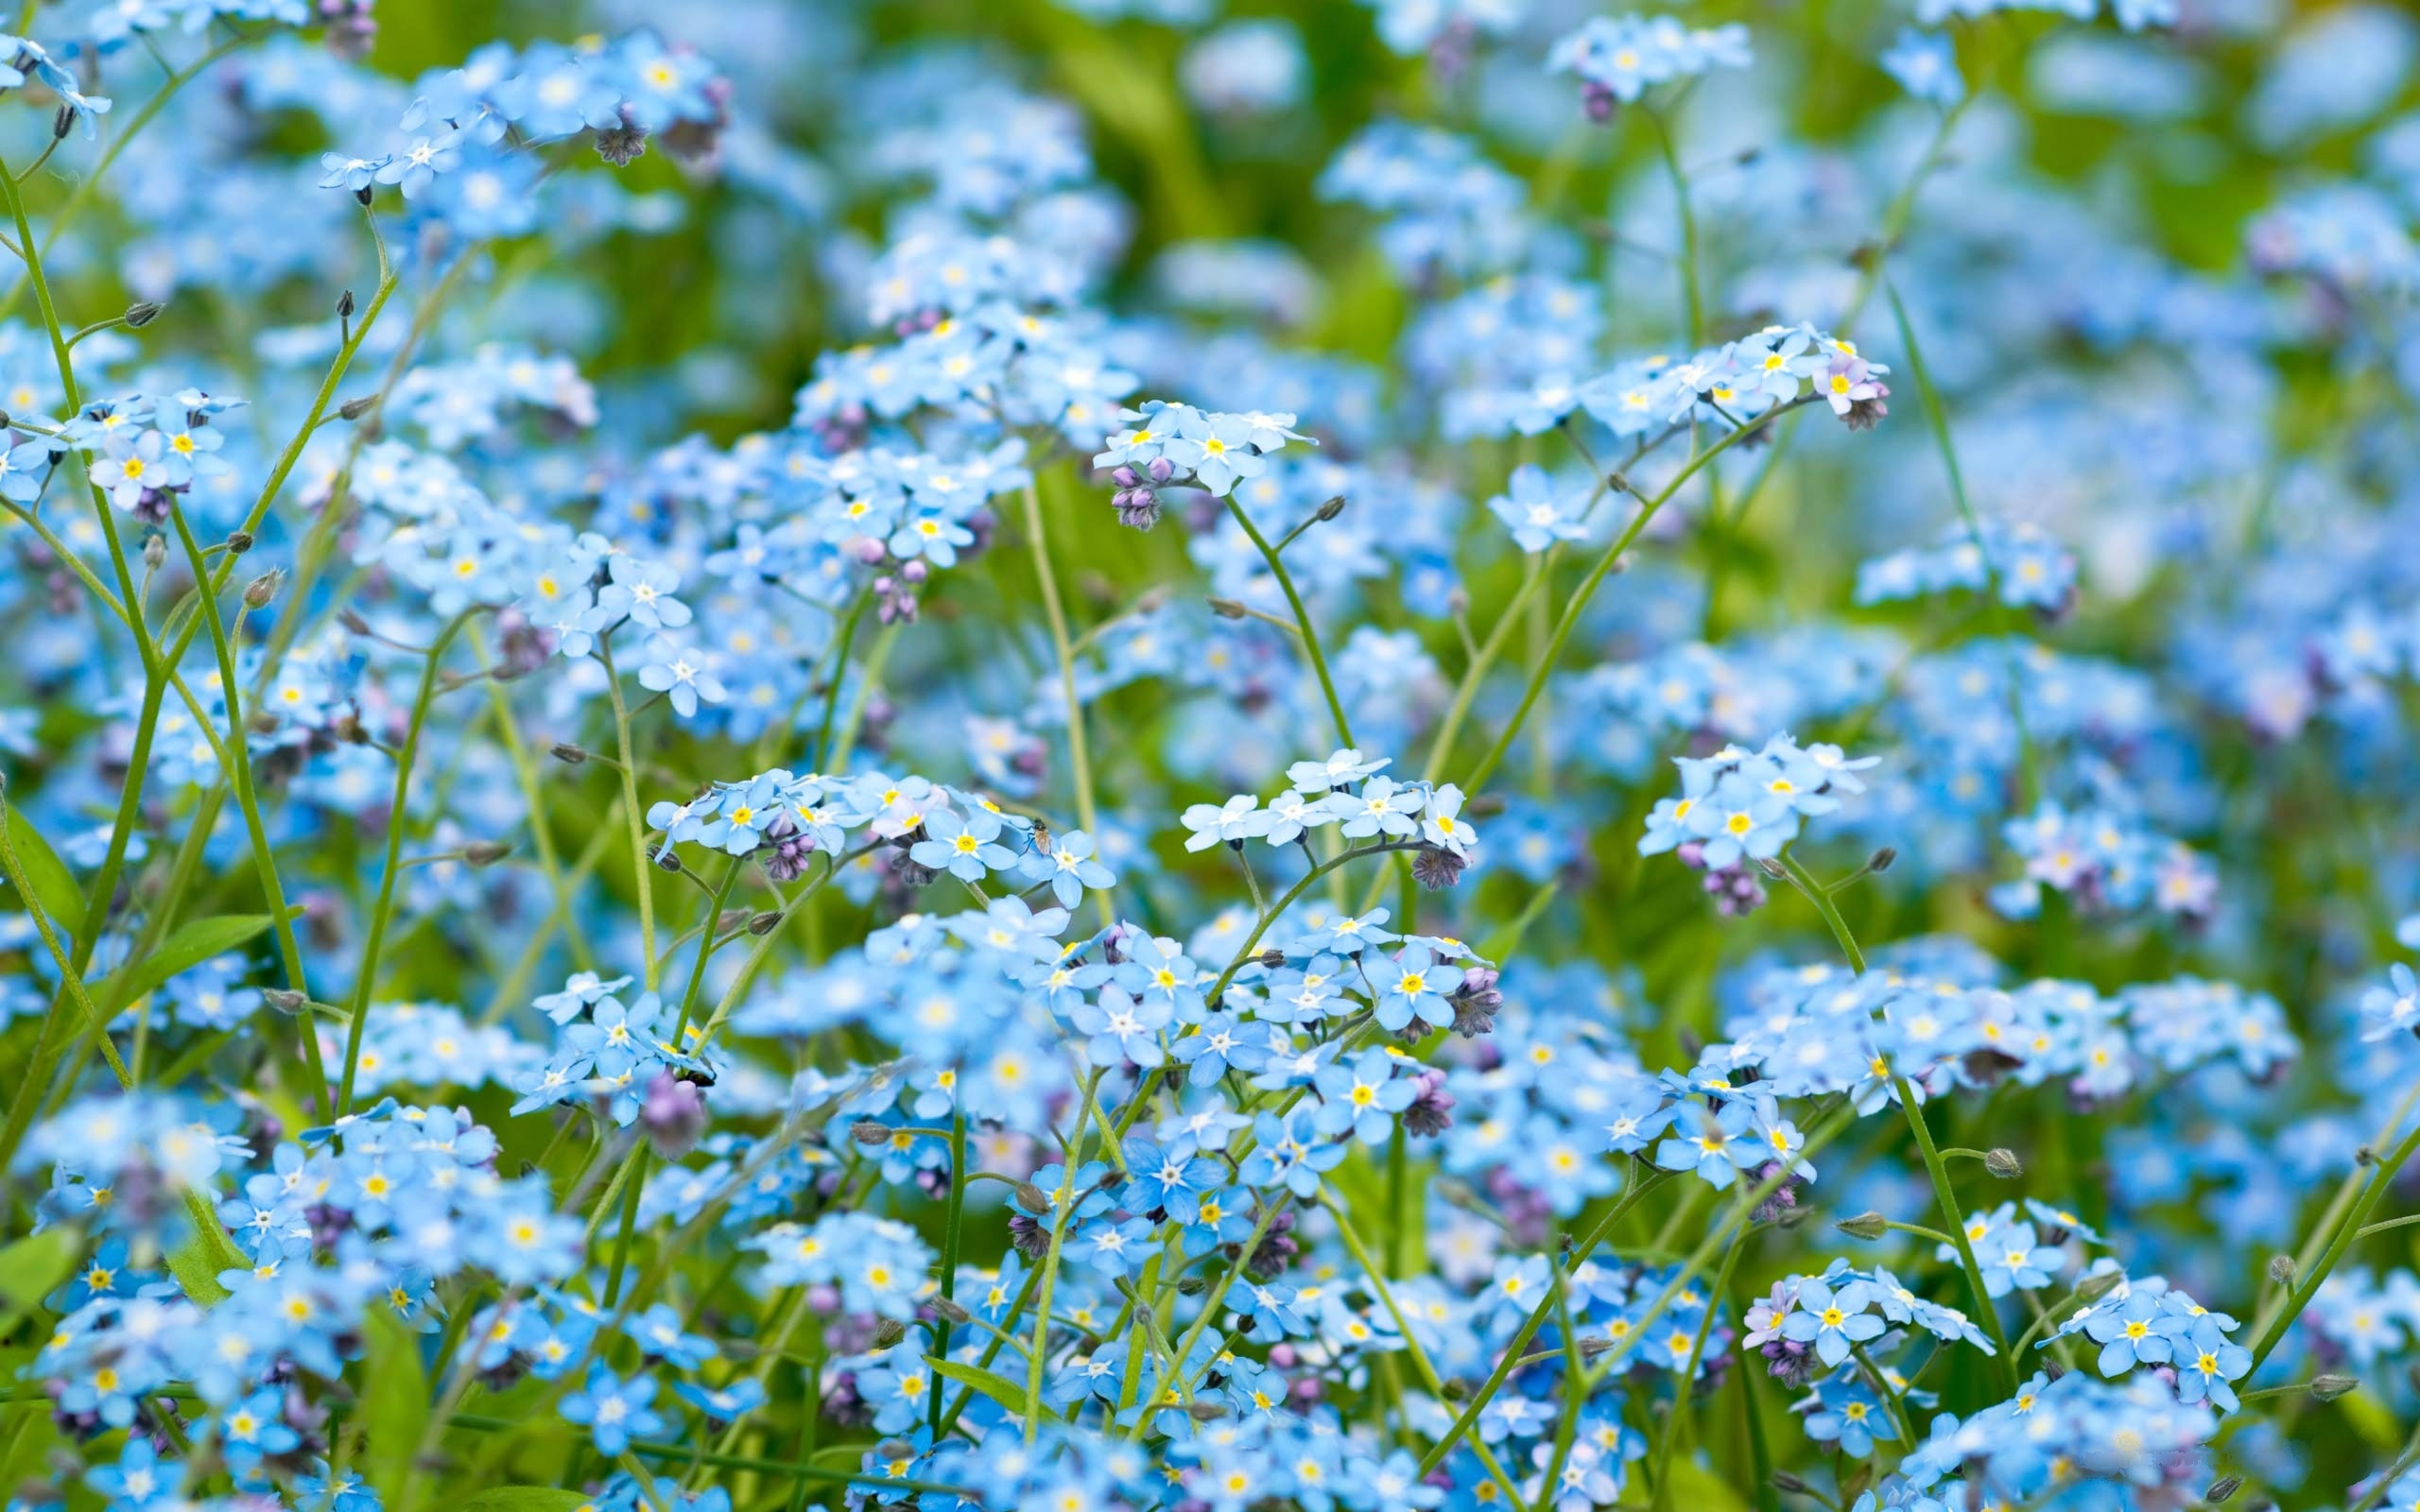 forget me not flower wallpapers images photos pictures backgrounds. Black Bedroom Furniture Sets. Home Design Ideas